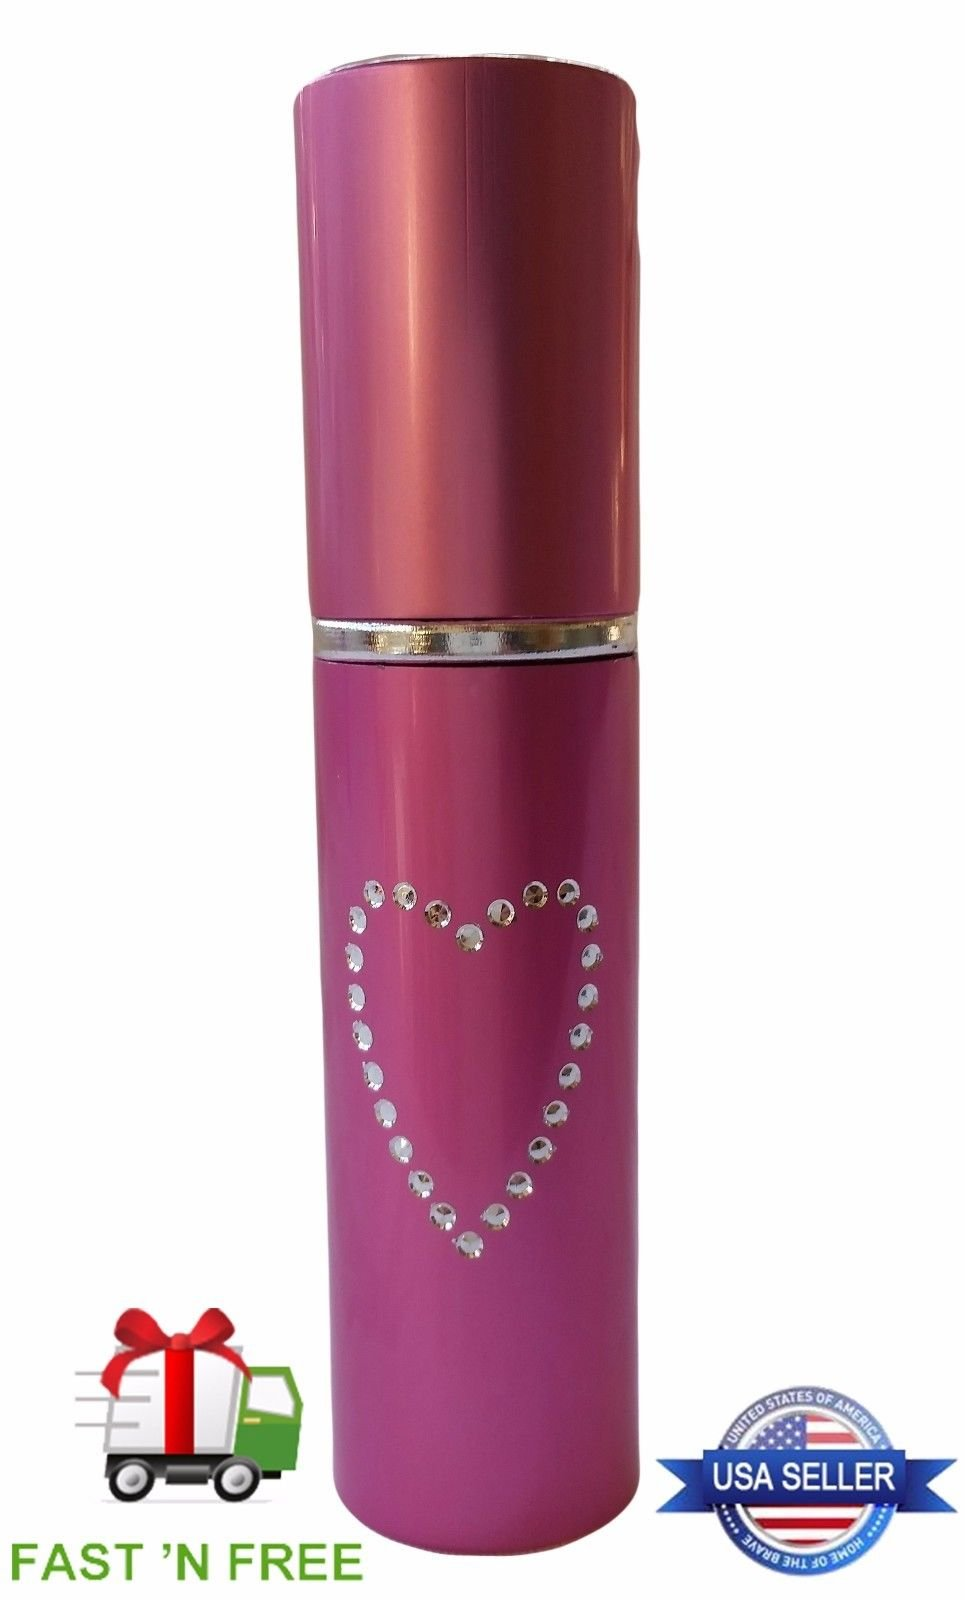 Pink Pepper Spray Self Defense For Women - Lipstick Style Police Strength Tactical Everyday Neutralizer Is Small + Discreet - Personal Safety Device Survival Tool Perfect for Pockets and Purses